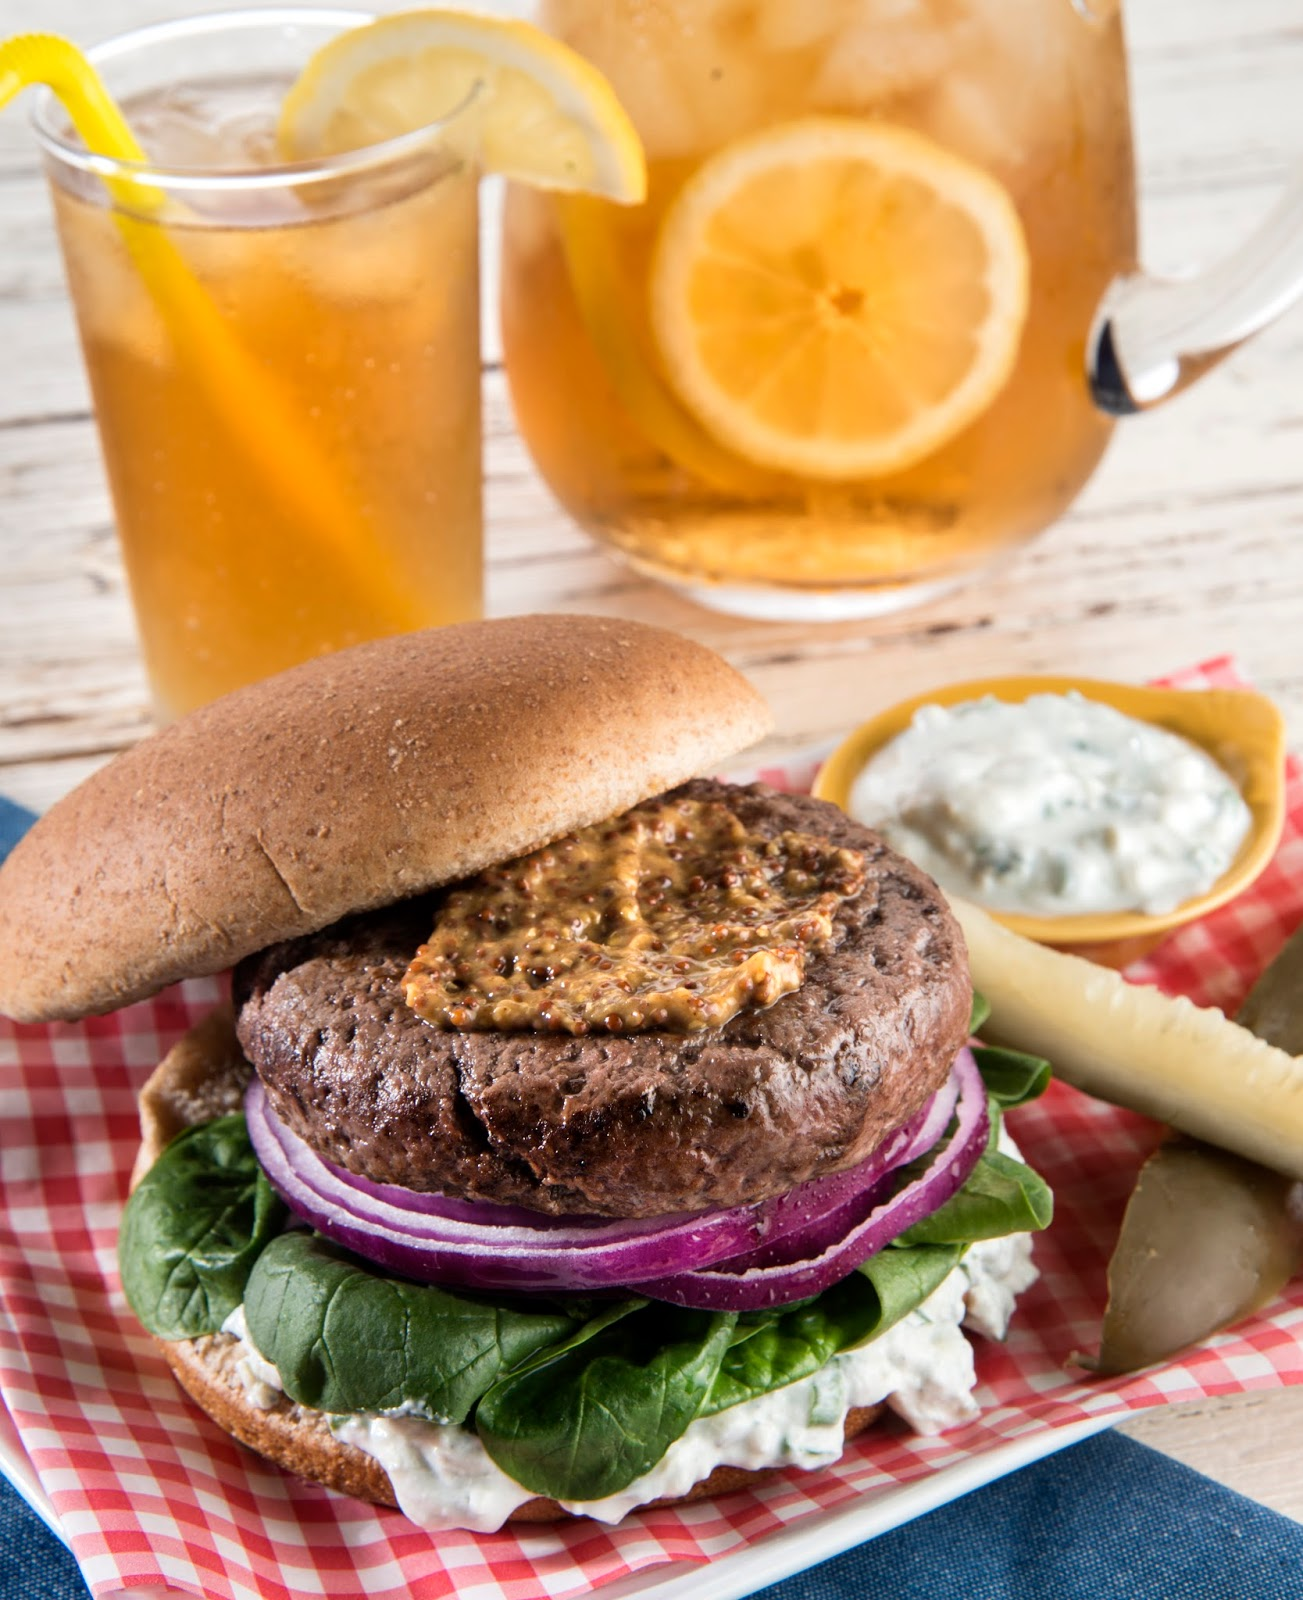 Blue Cheese Buffalo Burger, Audrey Johns